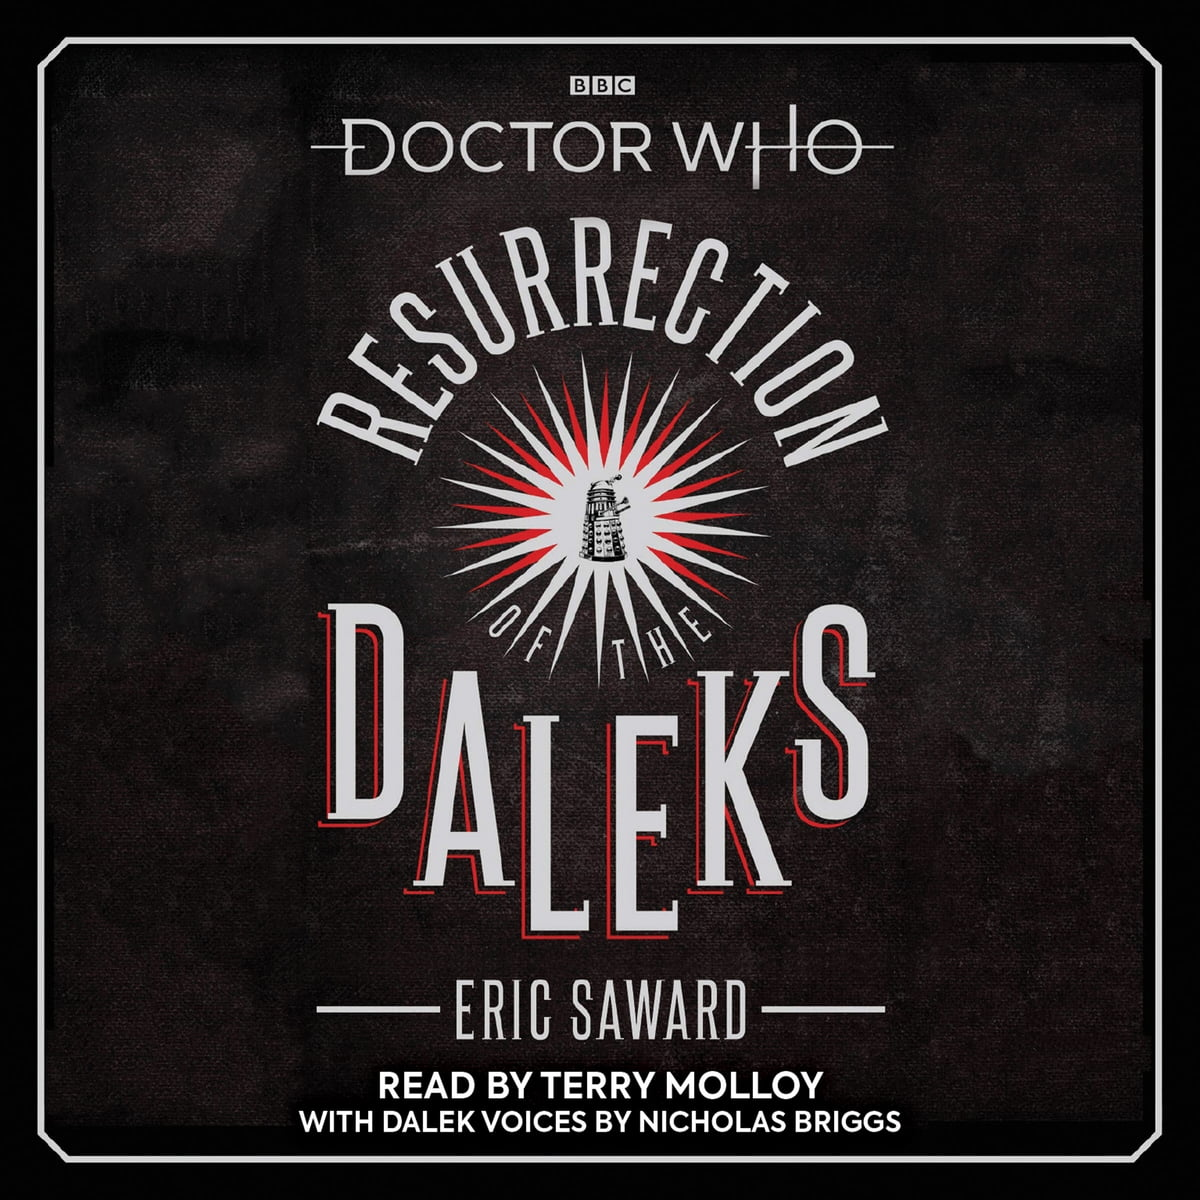 Doctor Who - Resurrection of the Daleks - Eric Saward